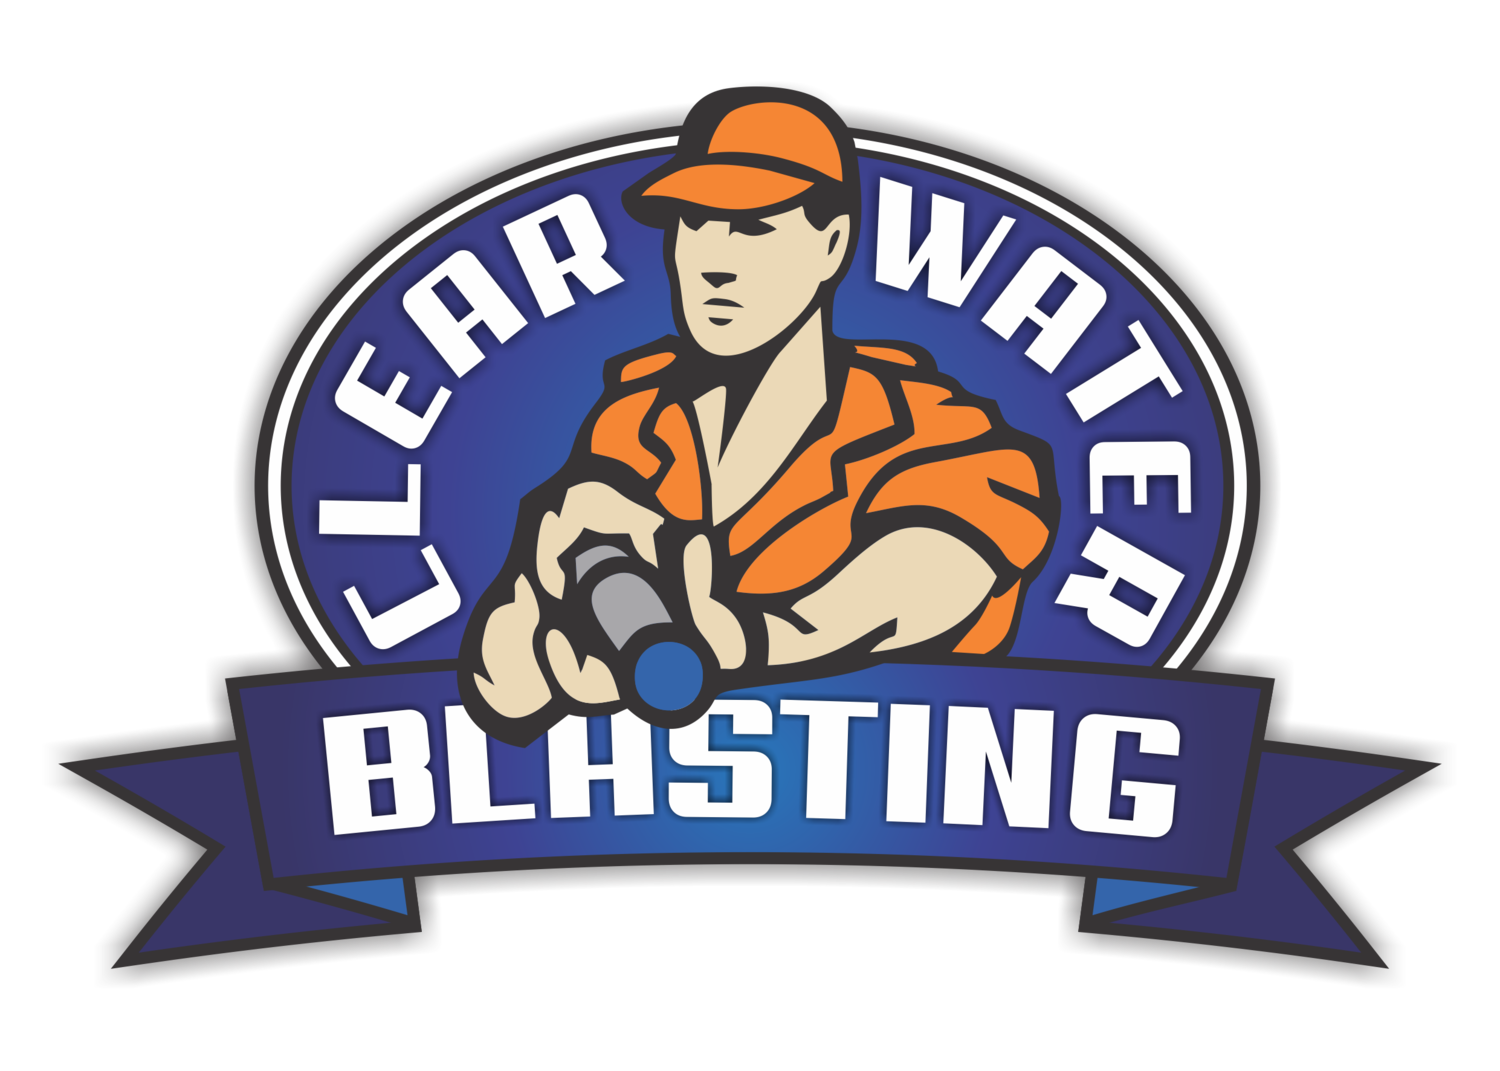 CLEAR WATER BLASTING SERVICES